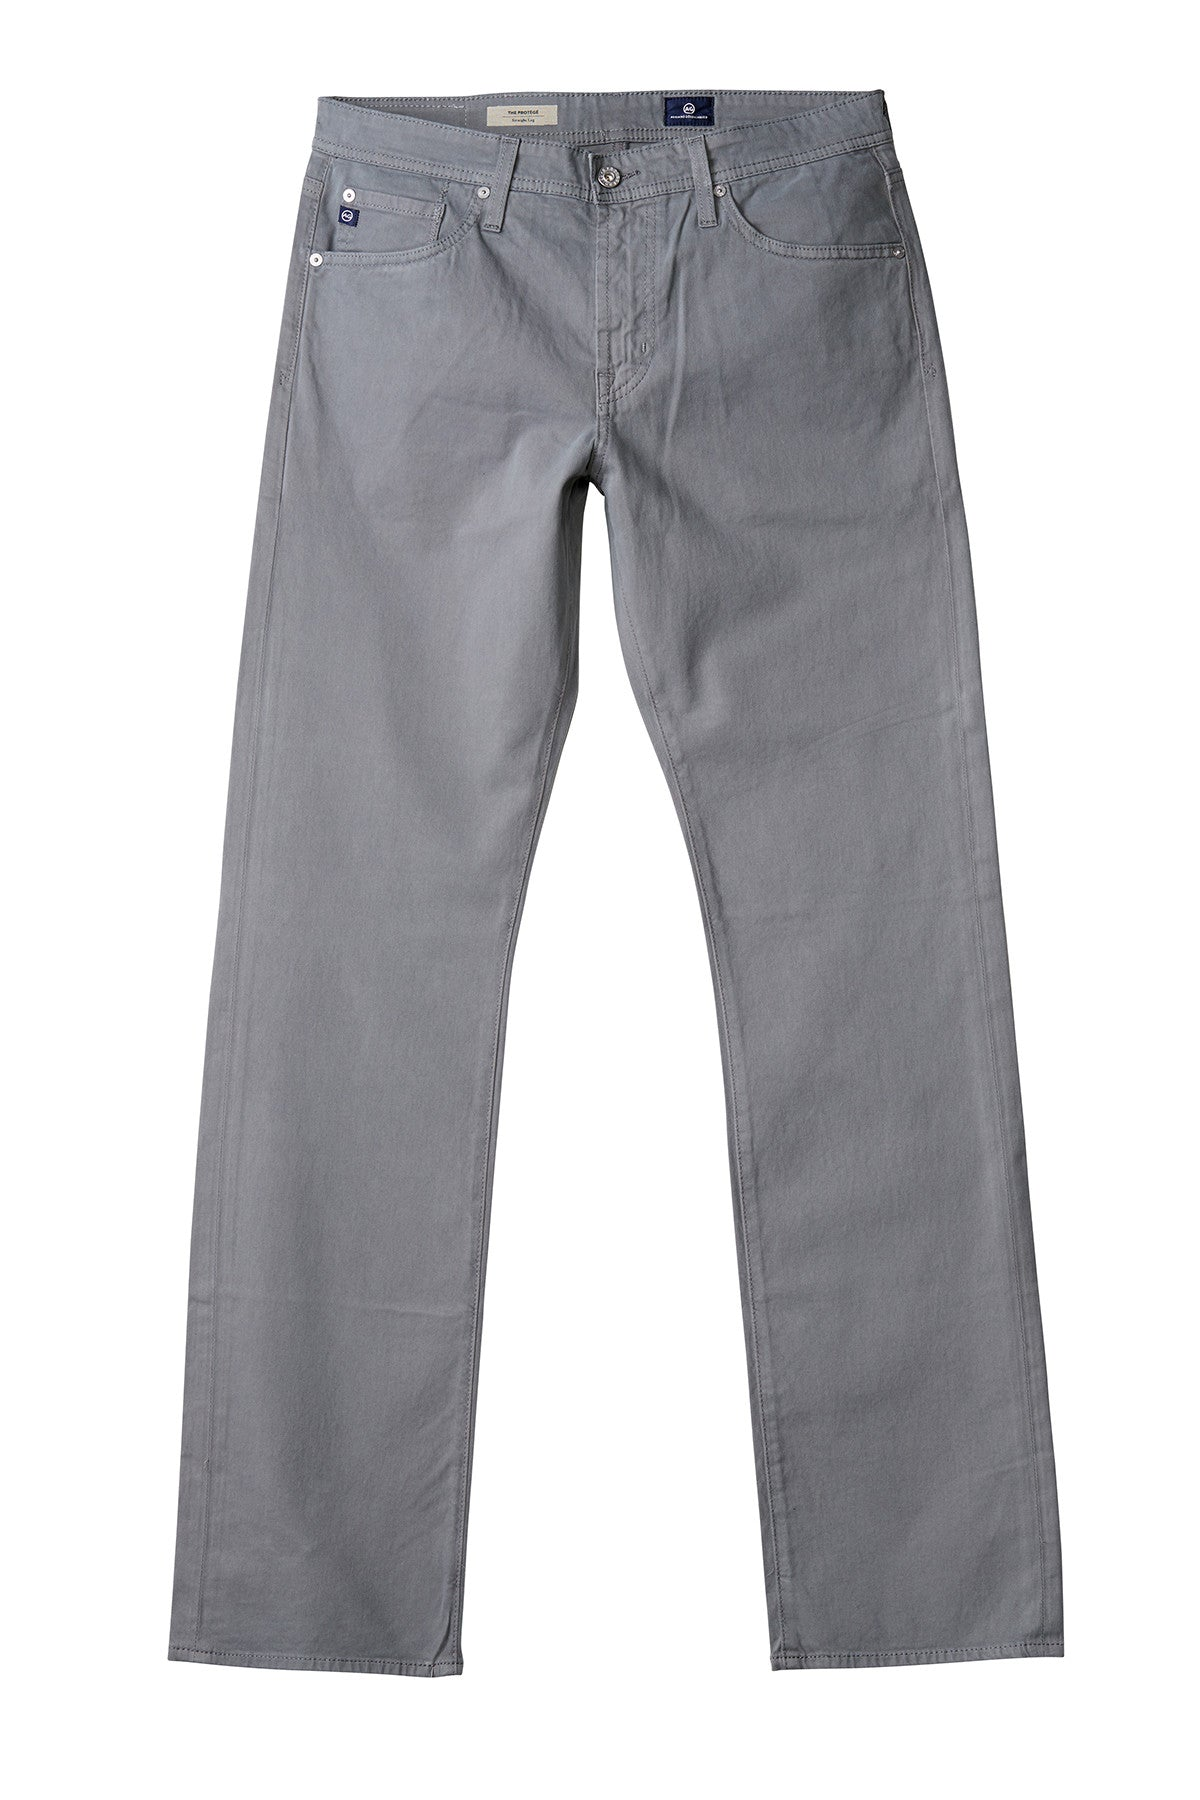 AG 'Protégé' Straight Leg Fit Pants in Sueded Sateen Stone Grey